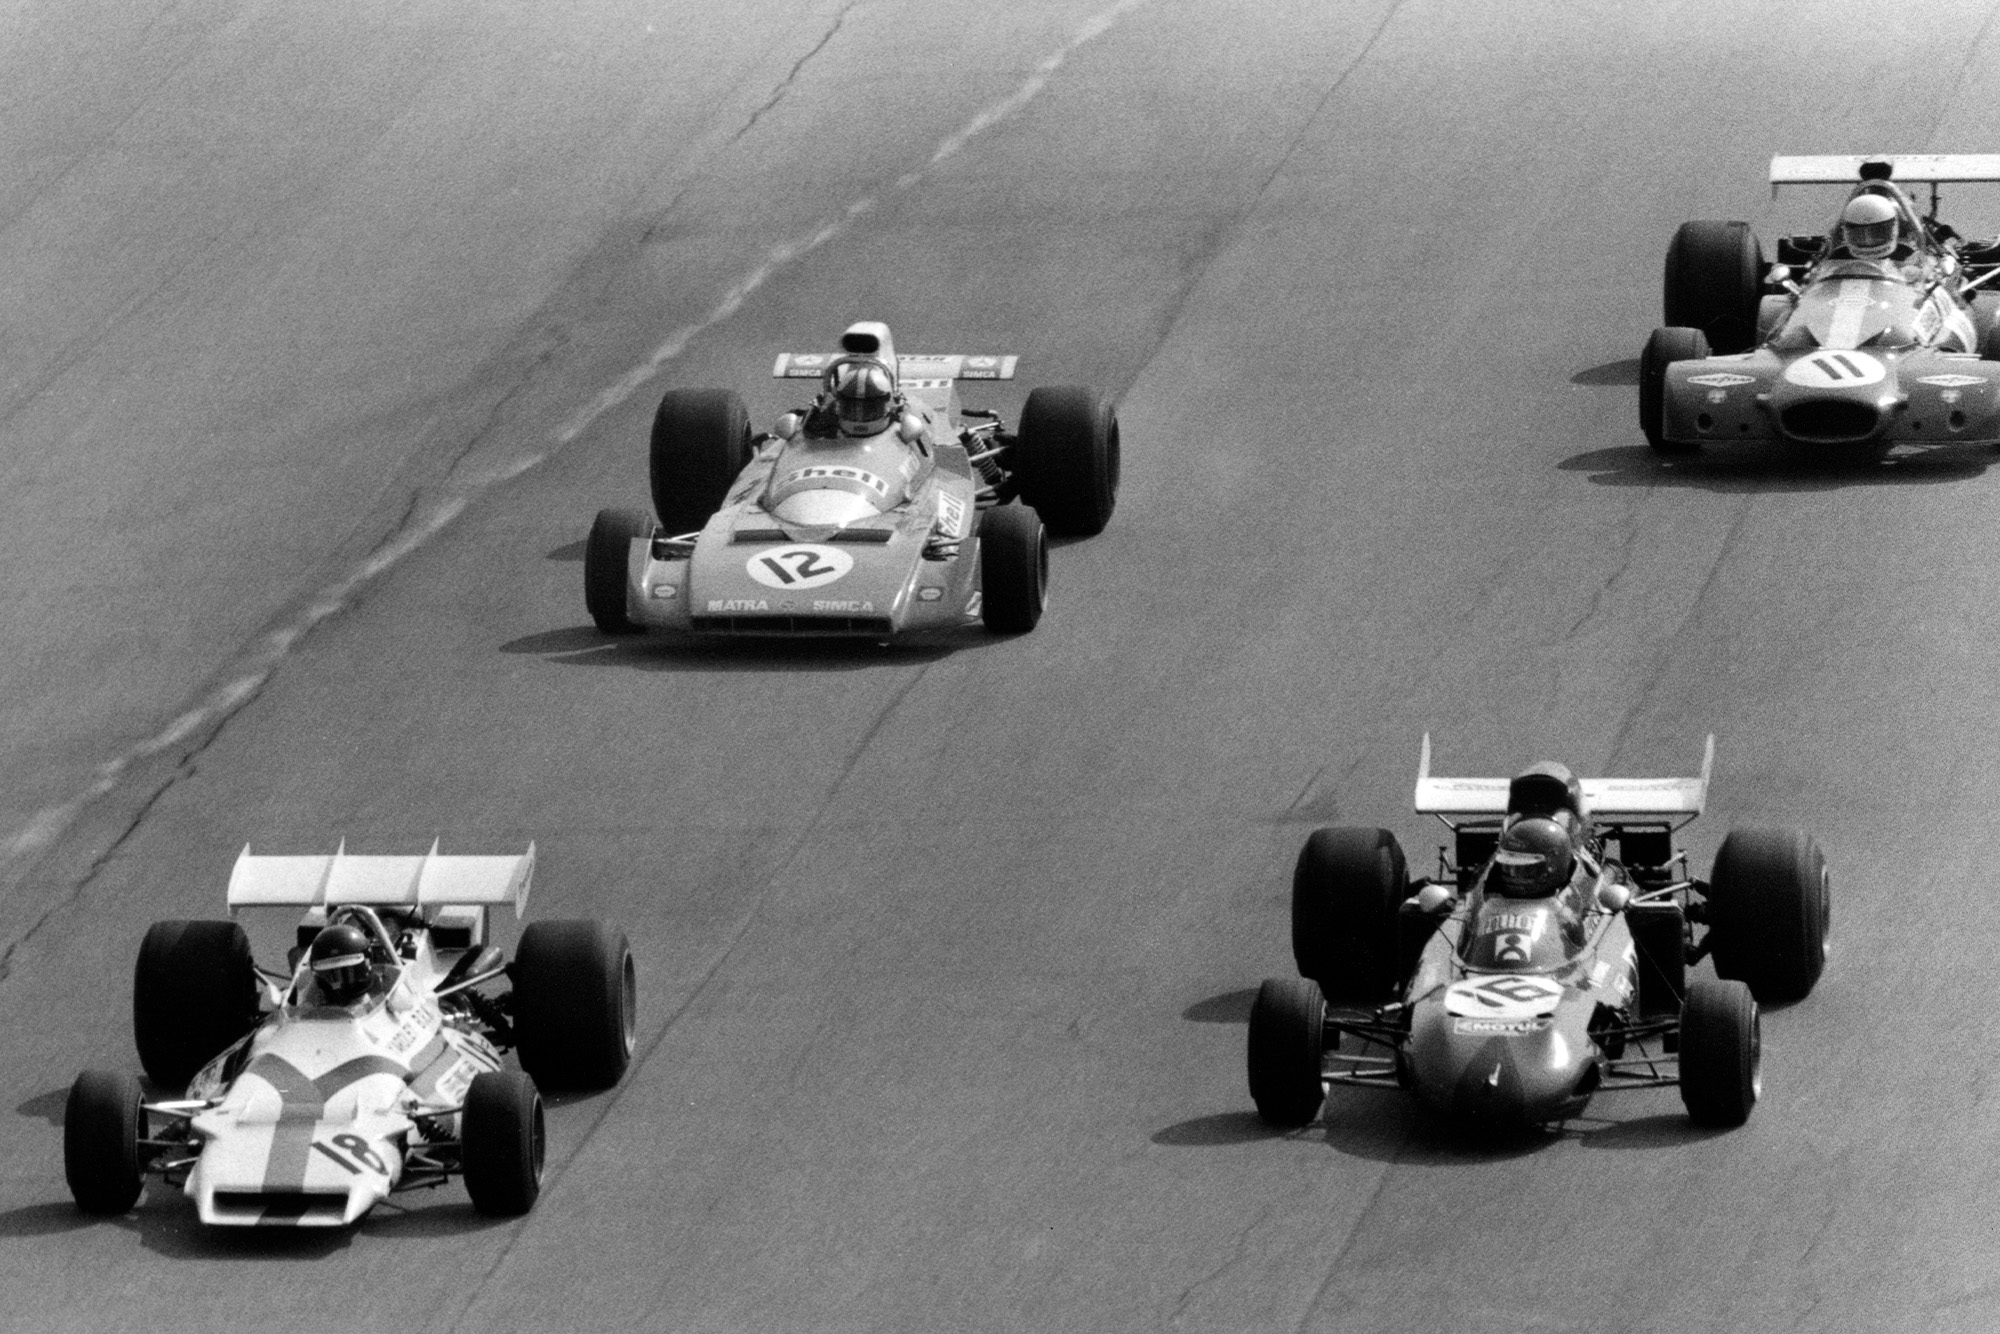 Peter Gethin Ronnie Peterson Chris Amon and Tim Schenken driving in a slipstreaming pack at the 1971 Italian Grand Prix